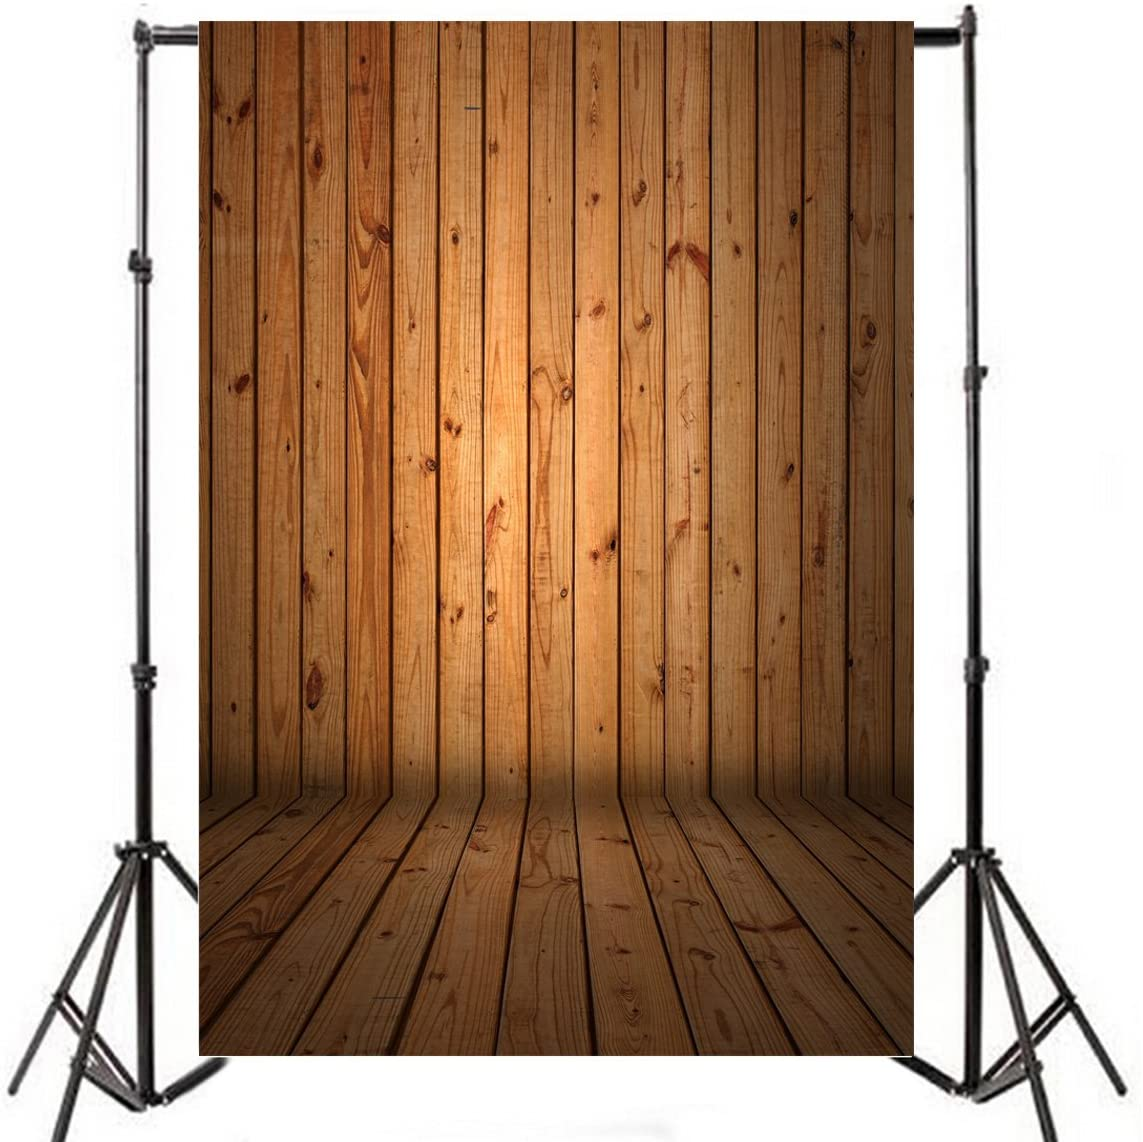 Yeele 5x7ft Wood Floor Photography Backdrop Vintage Rural Brown Wooden Board Wall Photo Background Baby Adult Portrait Shooting Party Banner Decor Photo Booth Shooting Studio Props